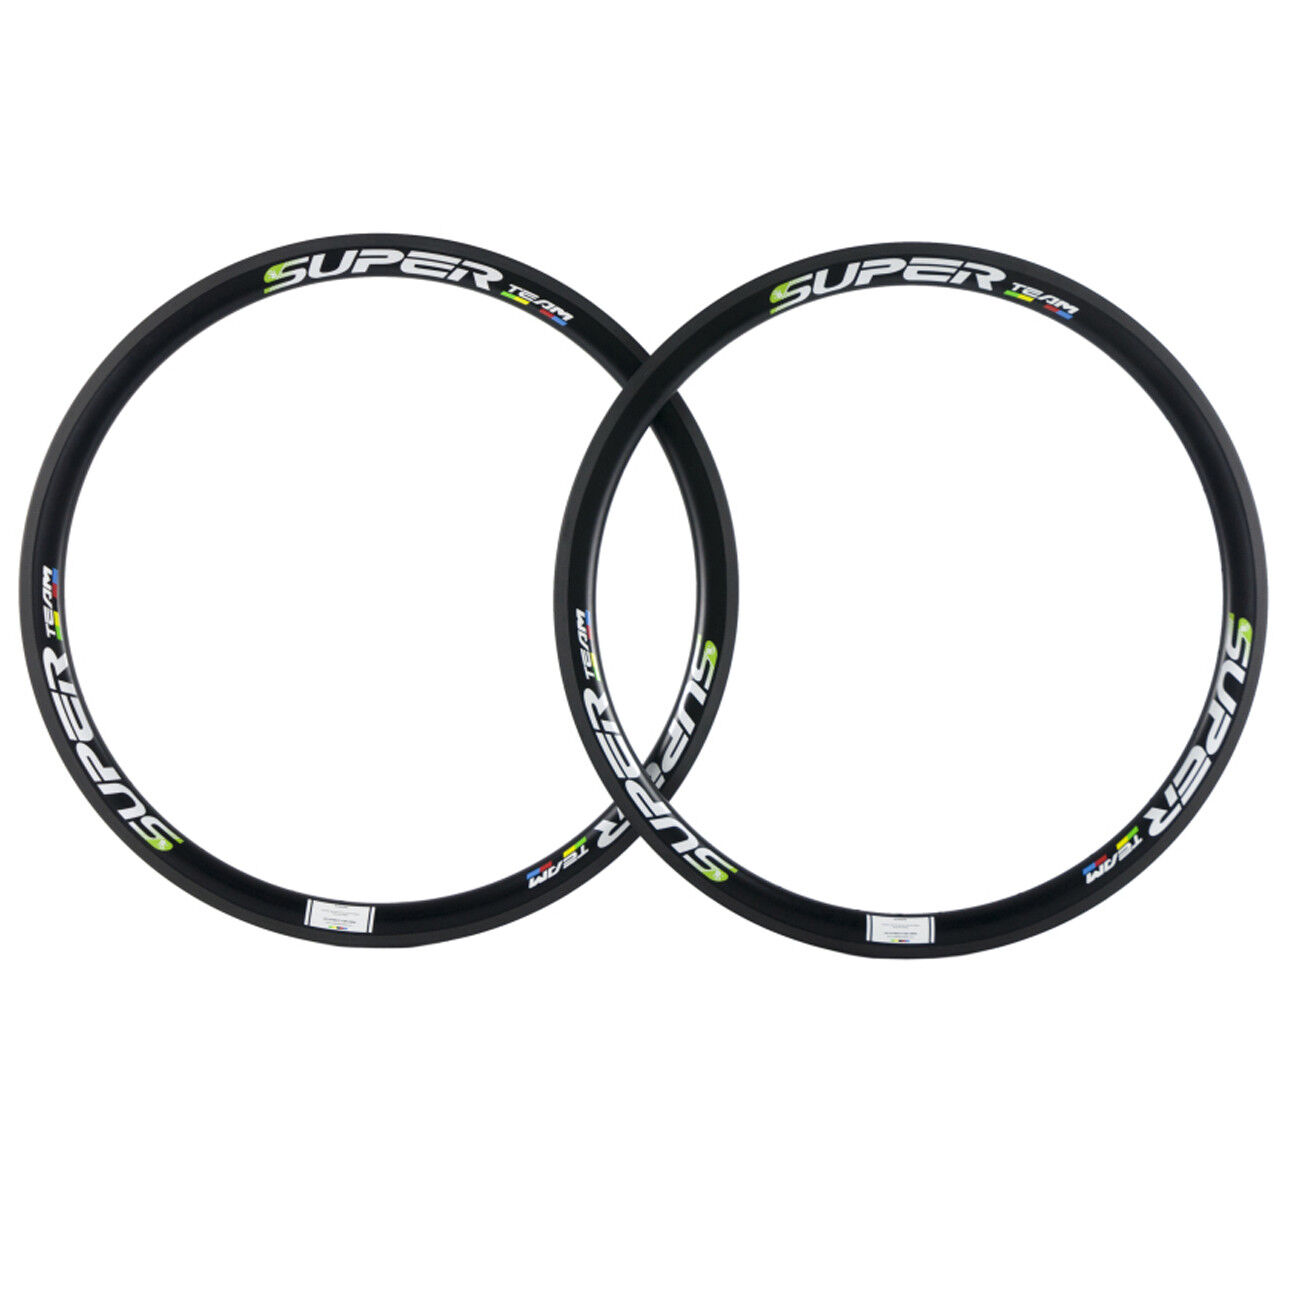 Superteam Carbon Rims 38mm Depth 23mm Width Road Bike Rim Climbing Bicycle Rims